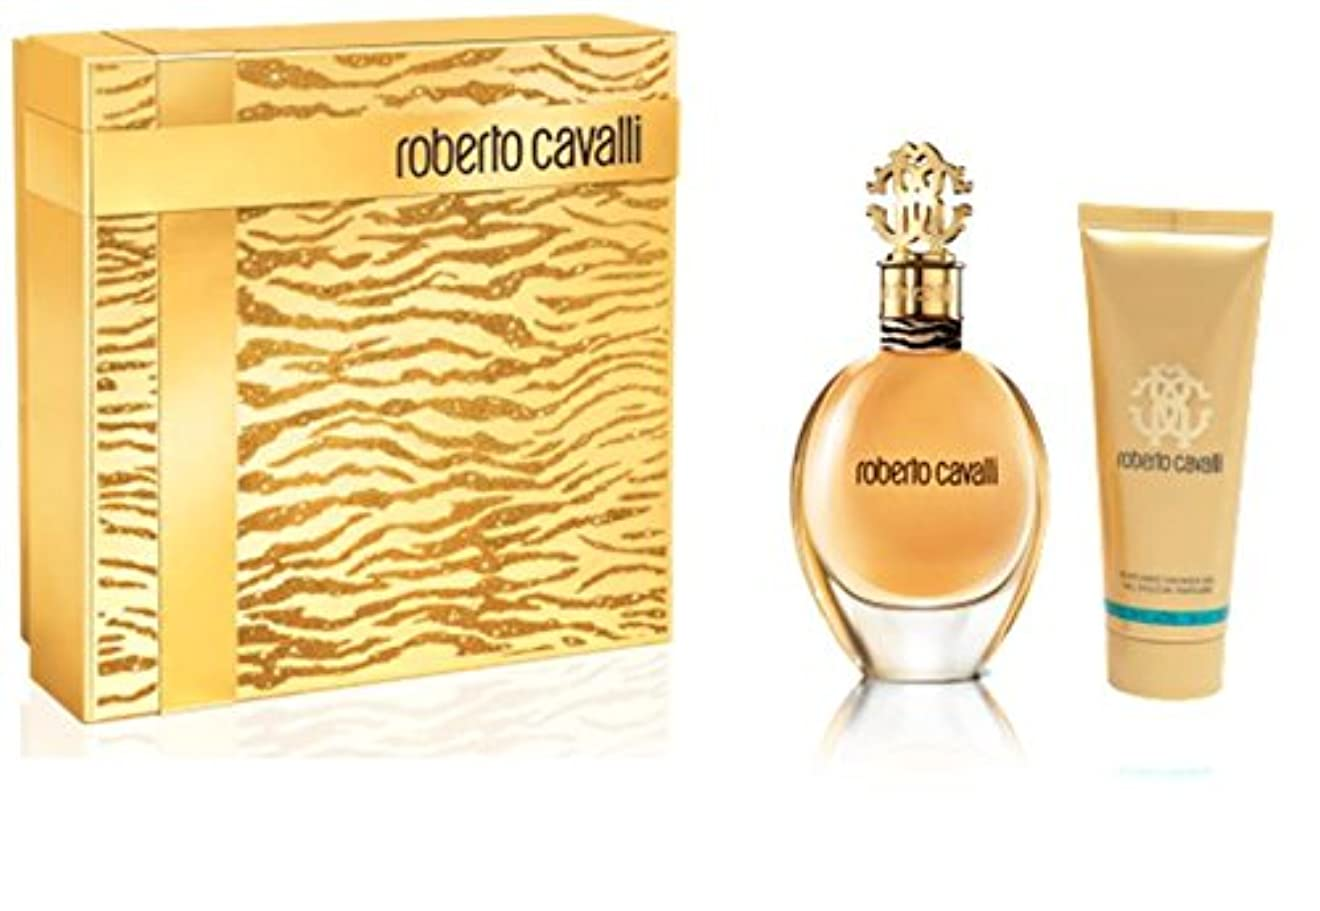 時間厳守憂鬱な輸血ロベルトカヴァリ Roberto Cavalli (New) Coffret: Eau De Parfum Spray 75ml + Body Lotion 75ml 2pcs [海外直送品]